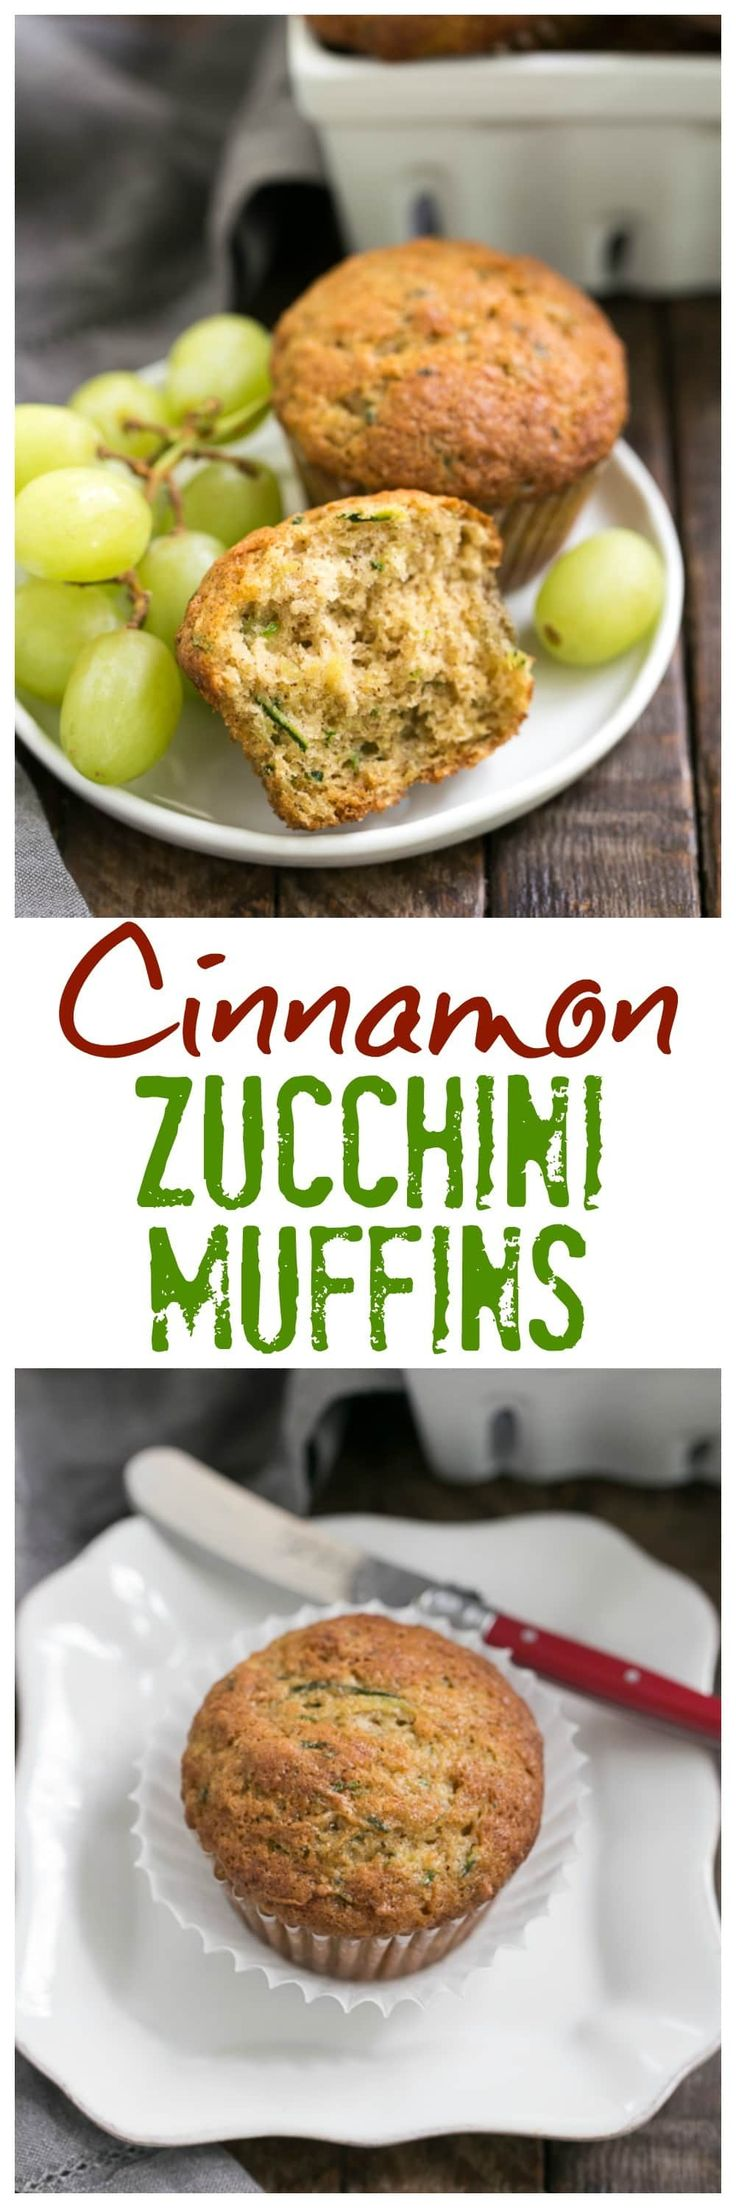 Cinnamon Zucchini Muffins | Tender, moist zucchini muffins kissed with cinnamon! @lizzydo